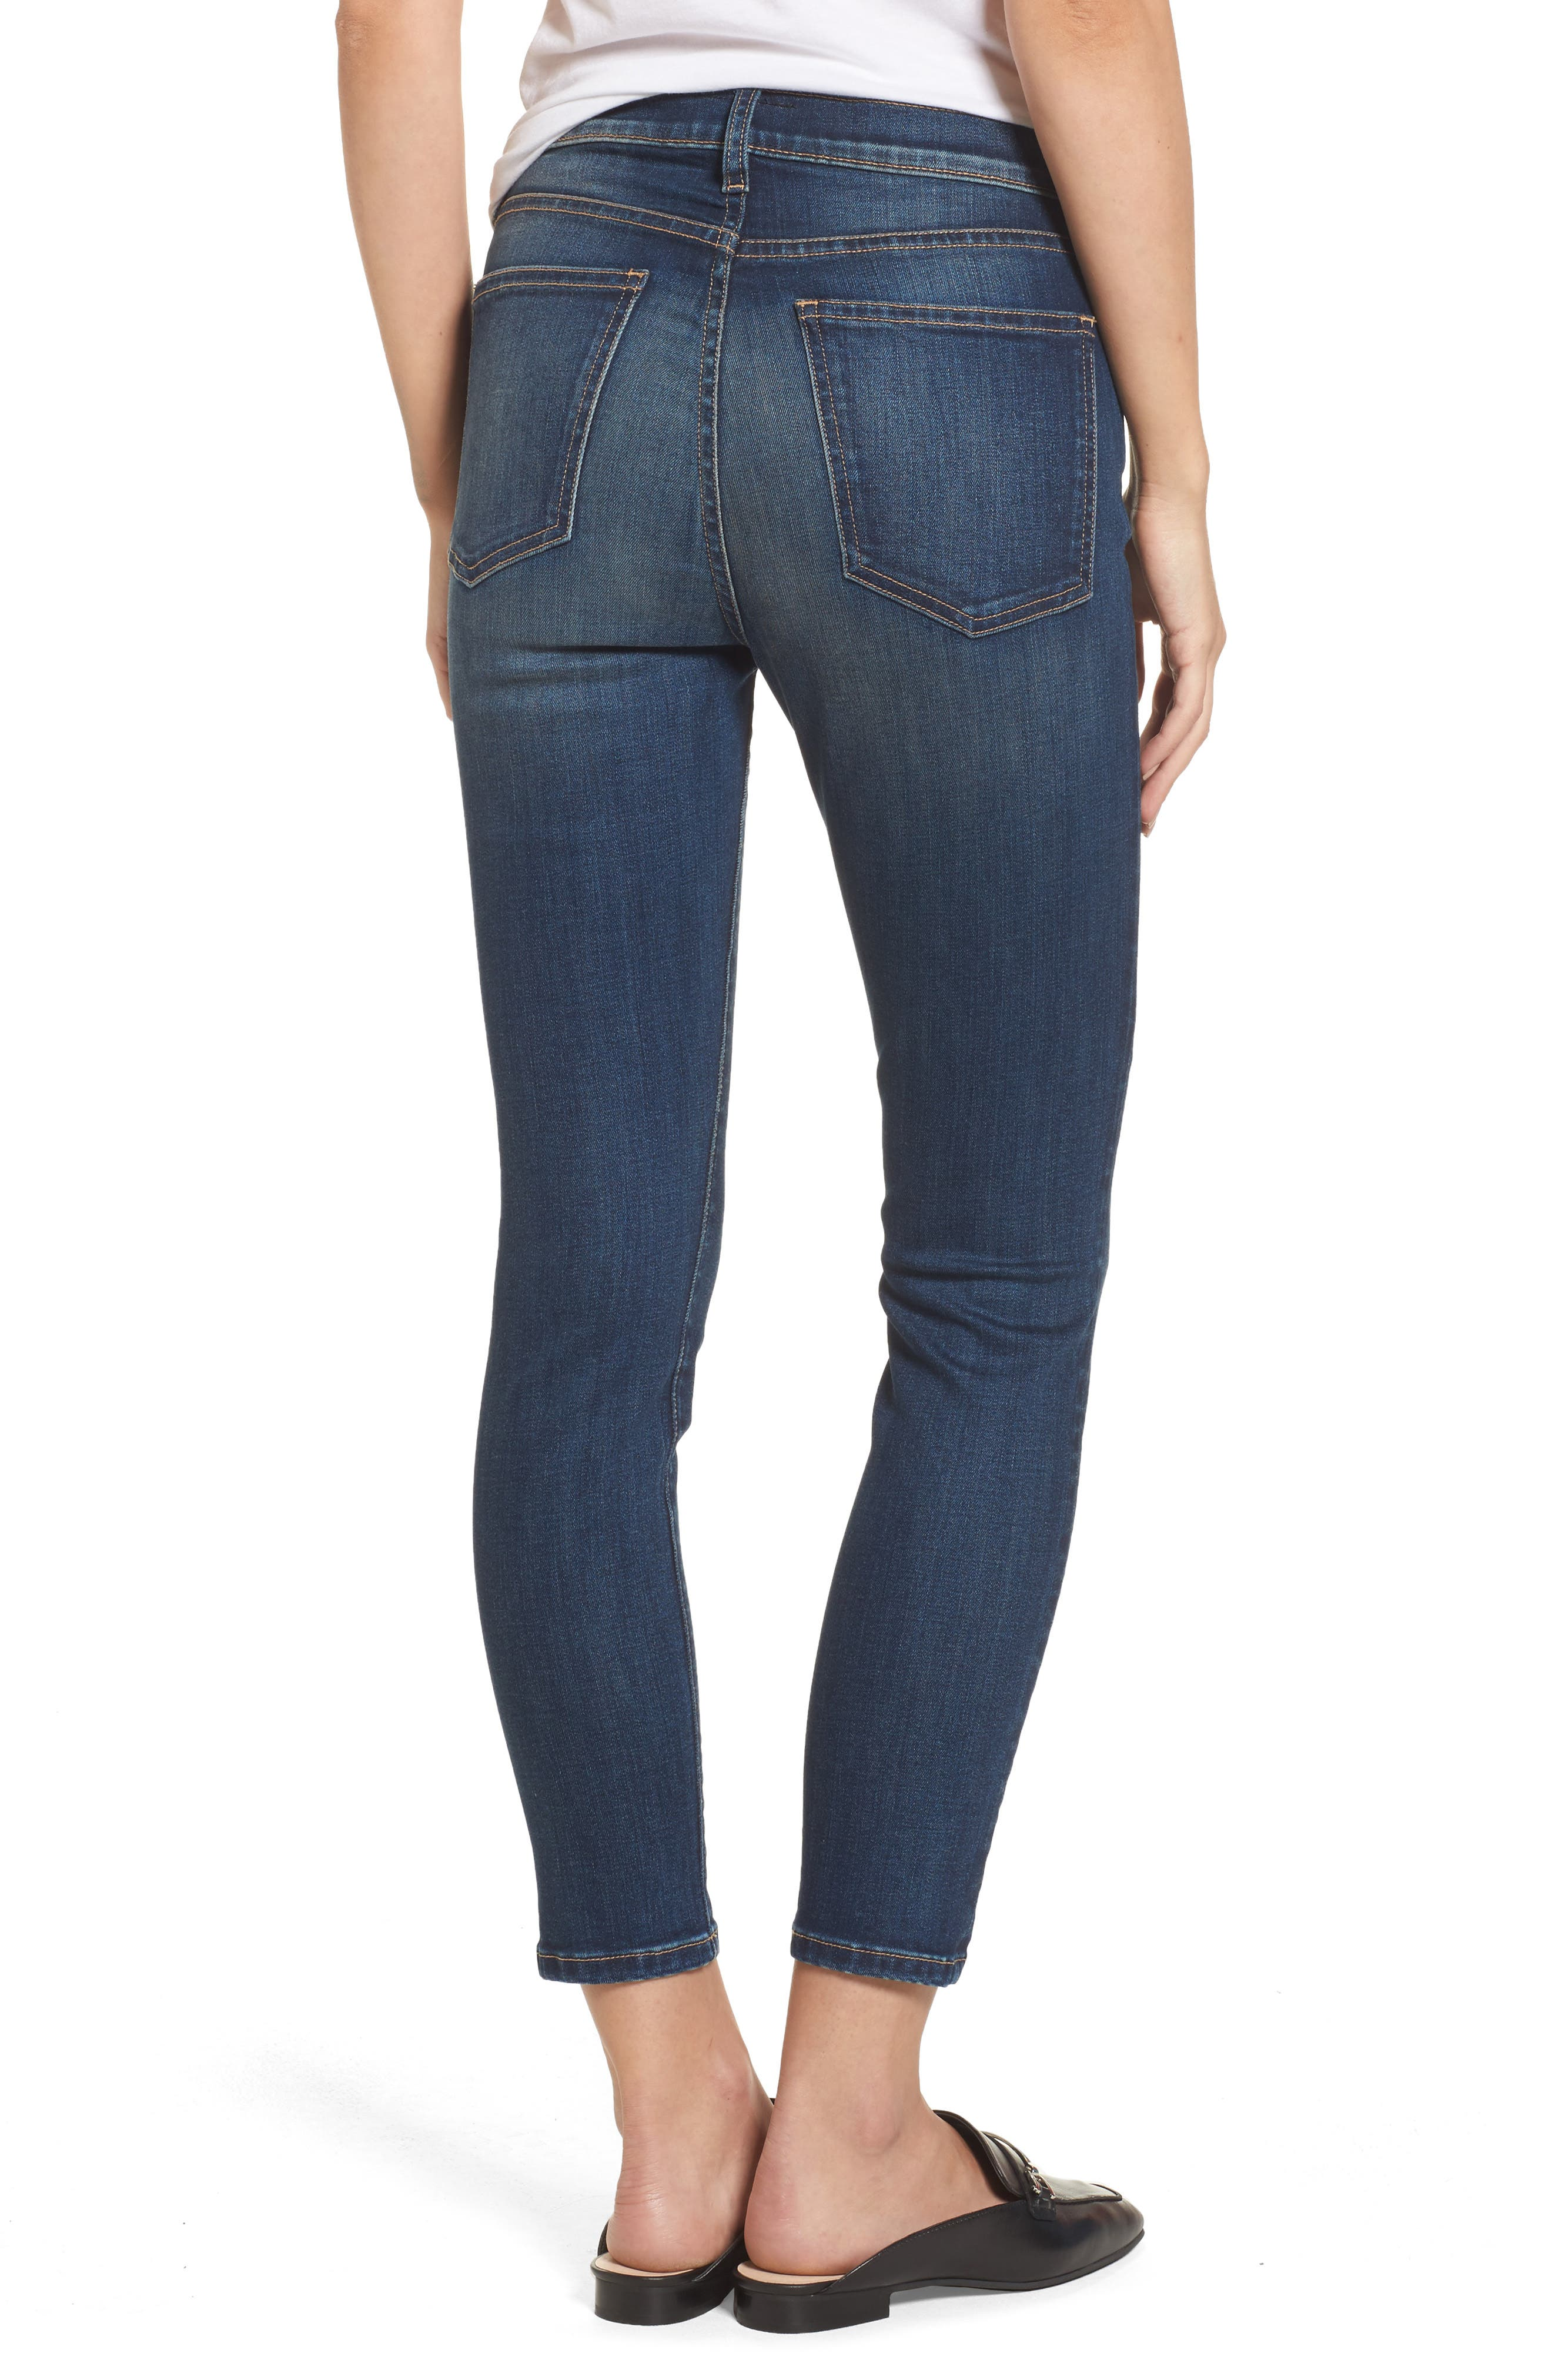 Alternate Image 3  - Current/Elliott The Stiletto High Waist Ankle Skinny Jeans (Love Found)